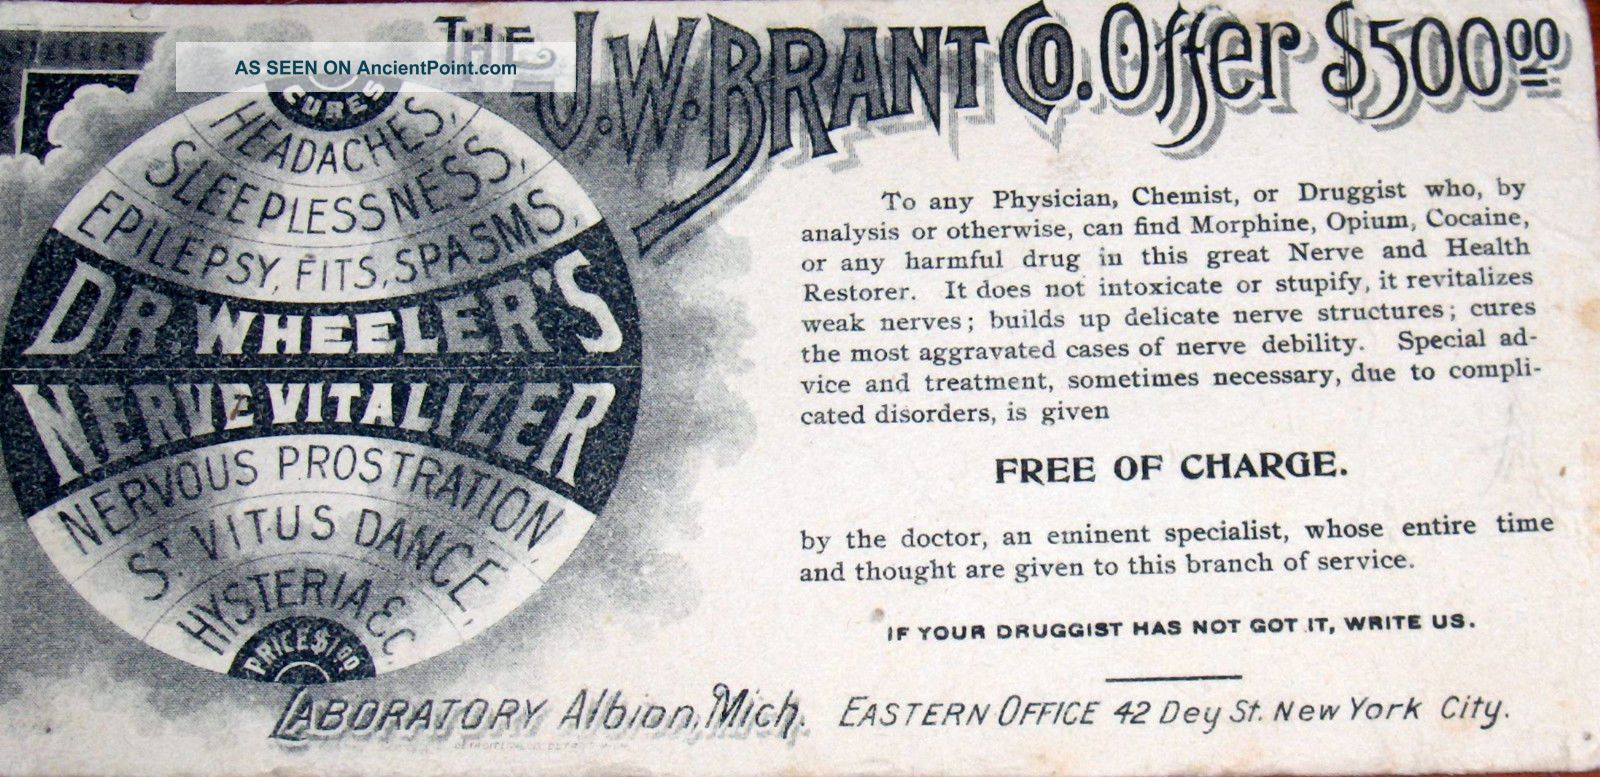 Antique J.  W.  Brant Co Offer Dr.  Wheelers Nerve Vitalizer Fraude Scam Reward $500 Other photo